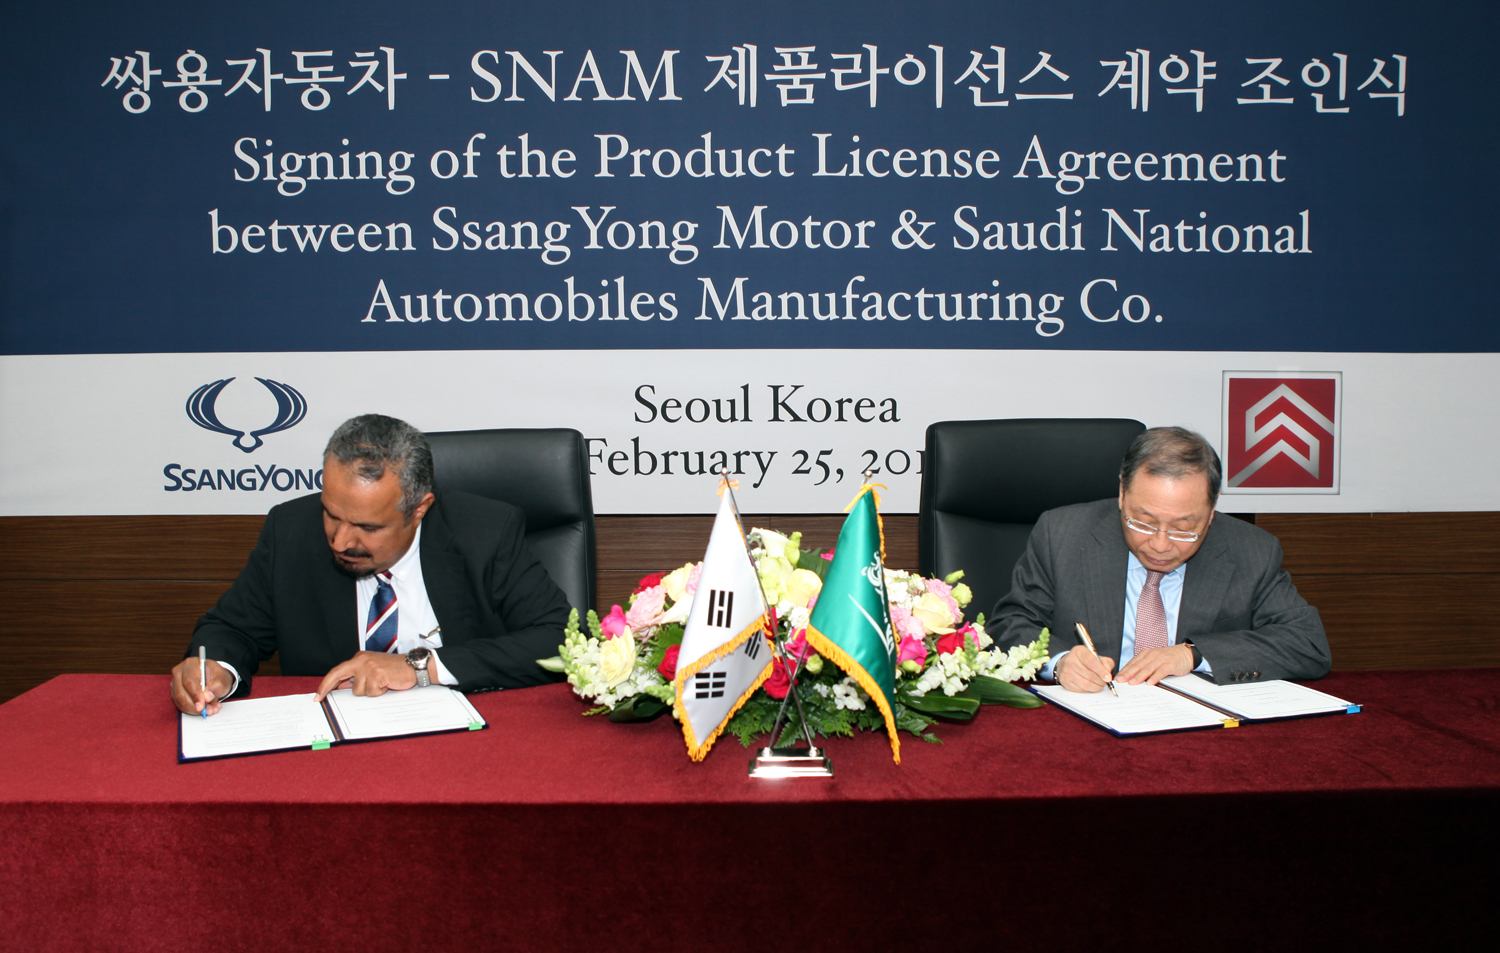 Ssangyong Motor Signs Licensing Agreement With Saudi National